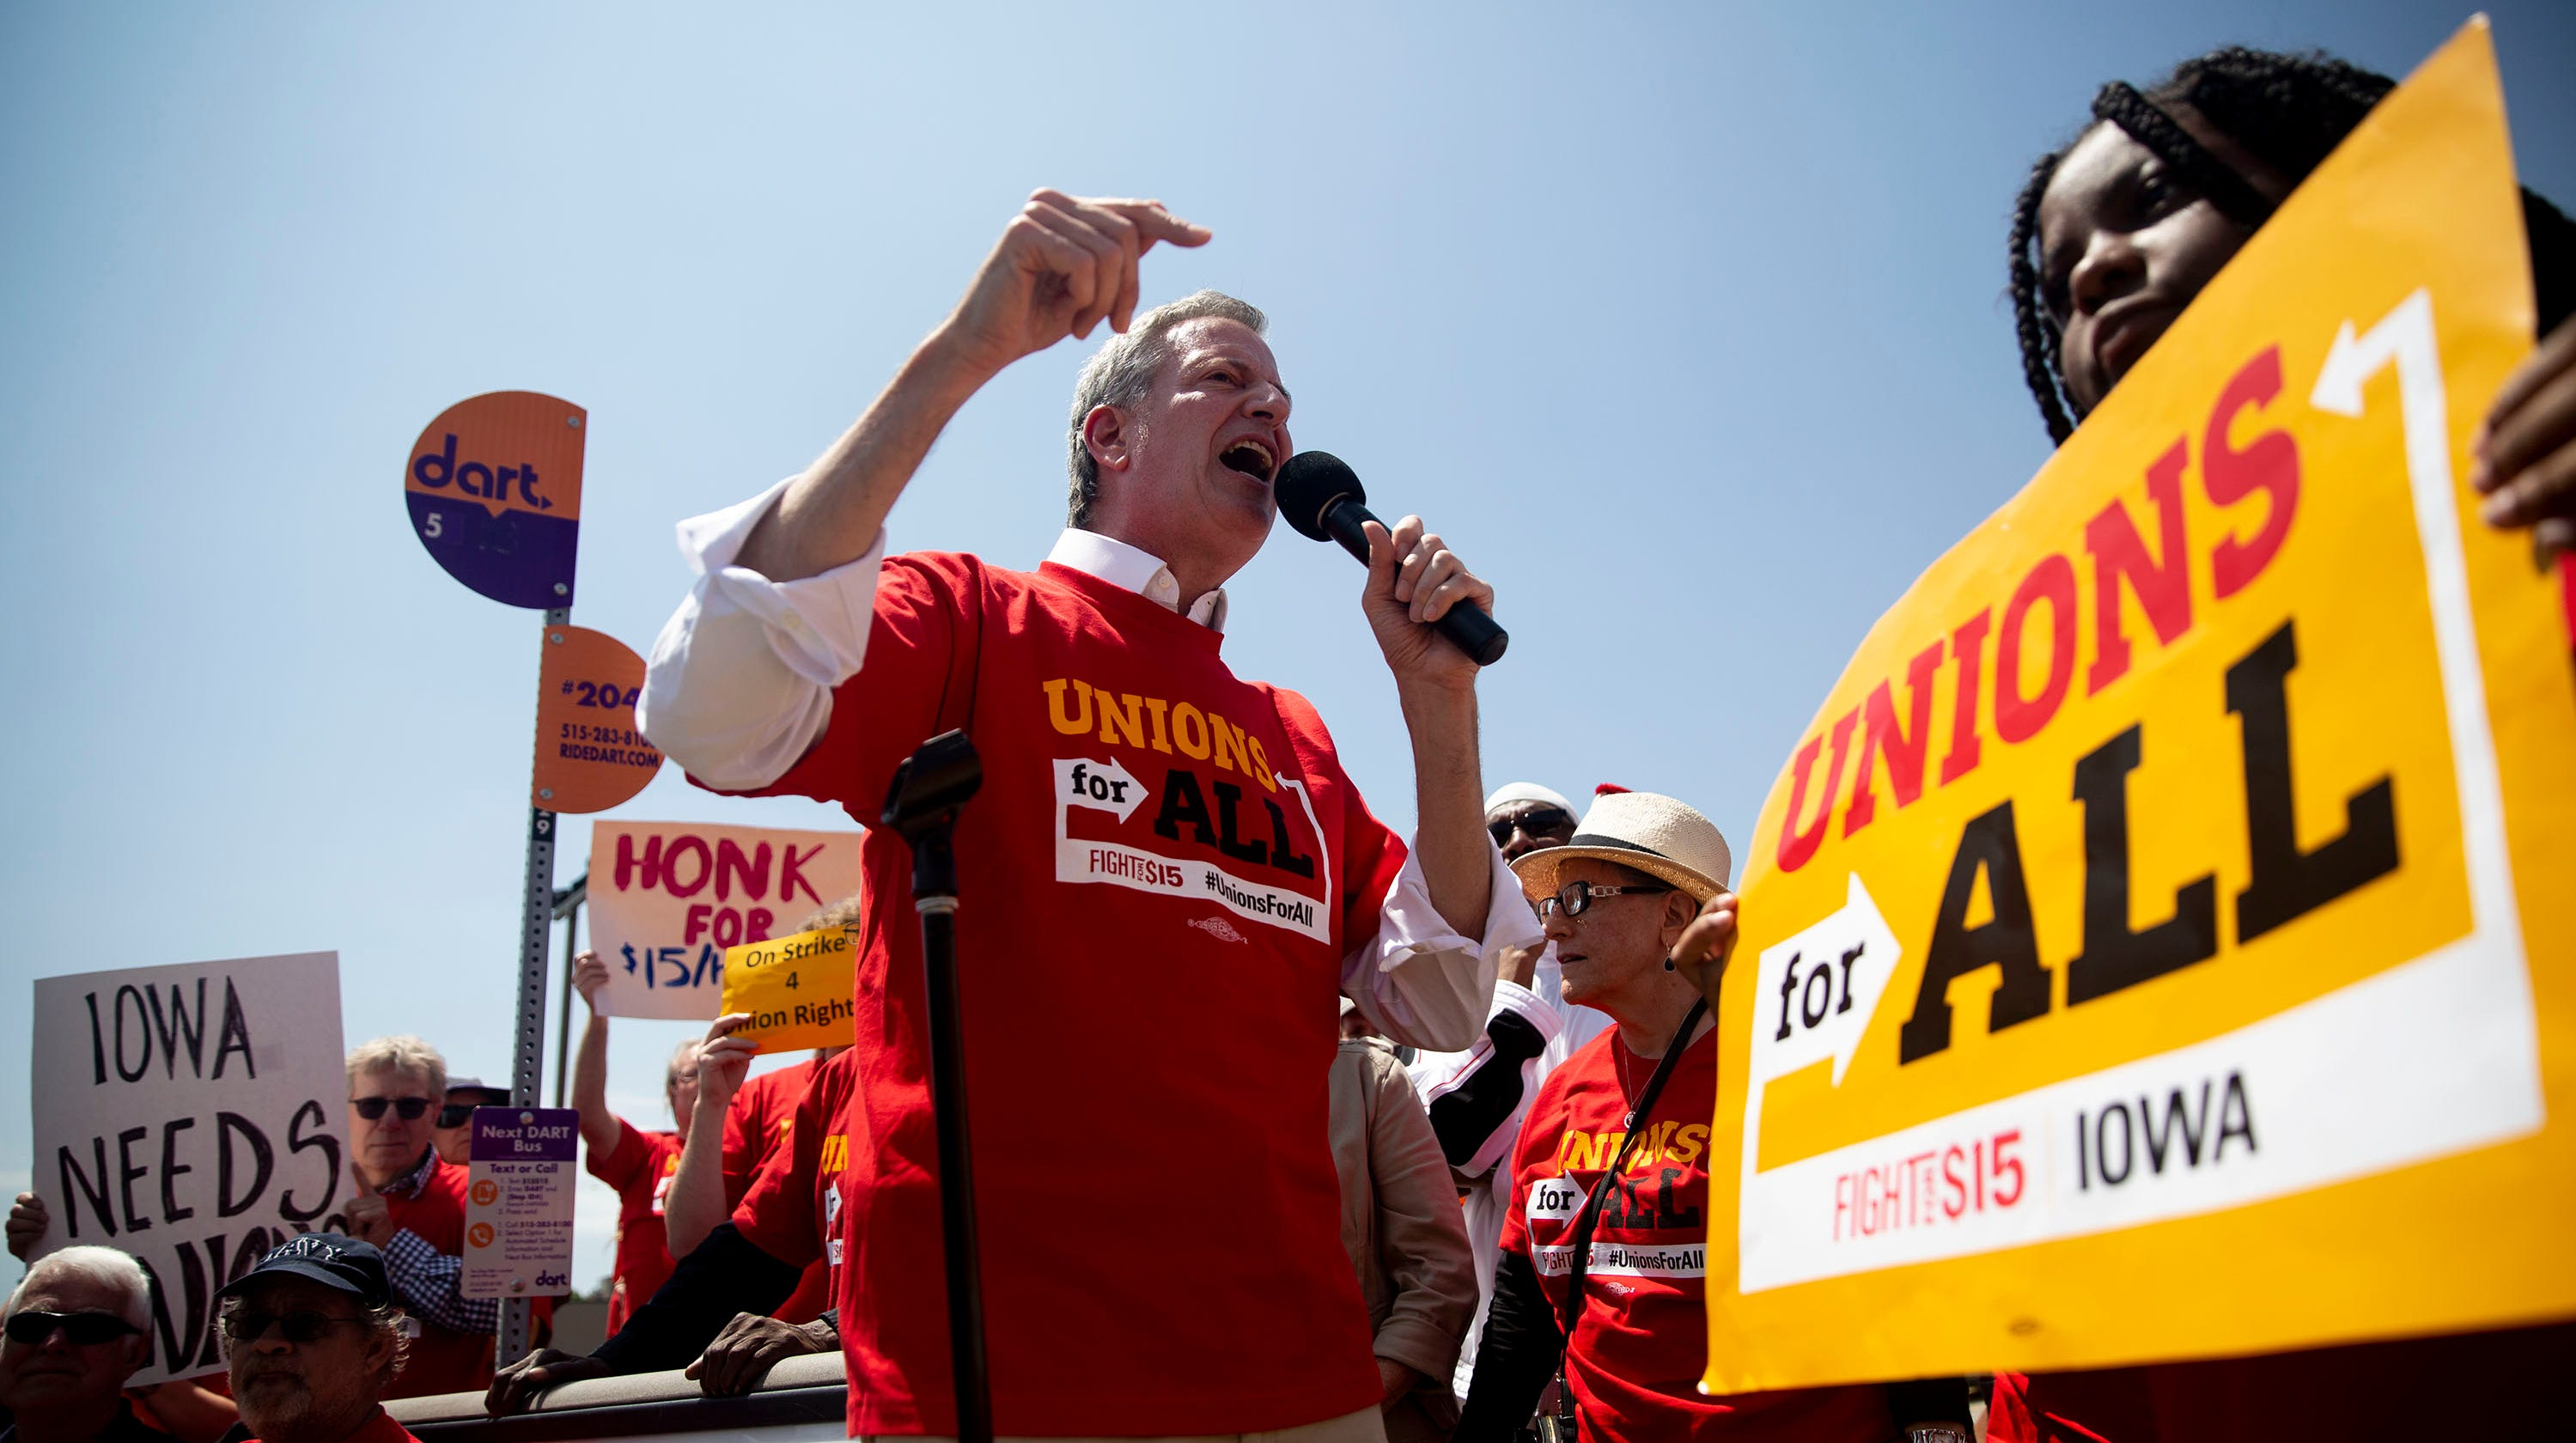 Bill de Blasio, Mayor of New York City, speaks to the crowd gathered outside of the McDonald's on Merle Hay Road on Thursday, May 23, 2019, rallying for a $15 minimum wage, in Des Moines. Fight for 15 protests were held across the country today.